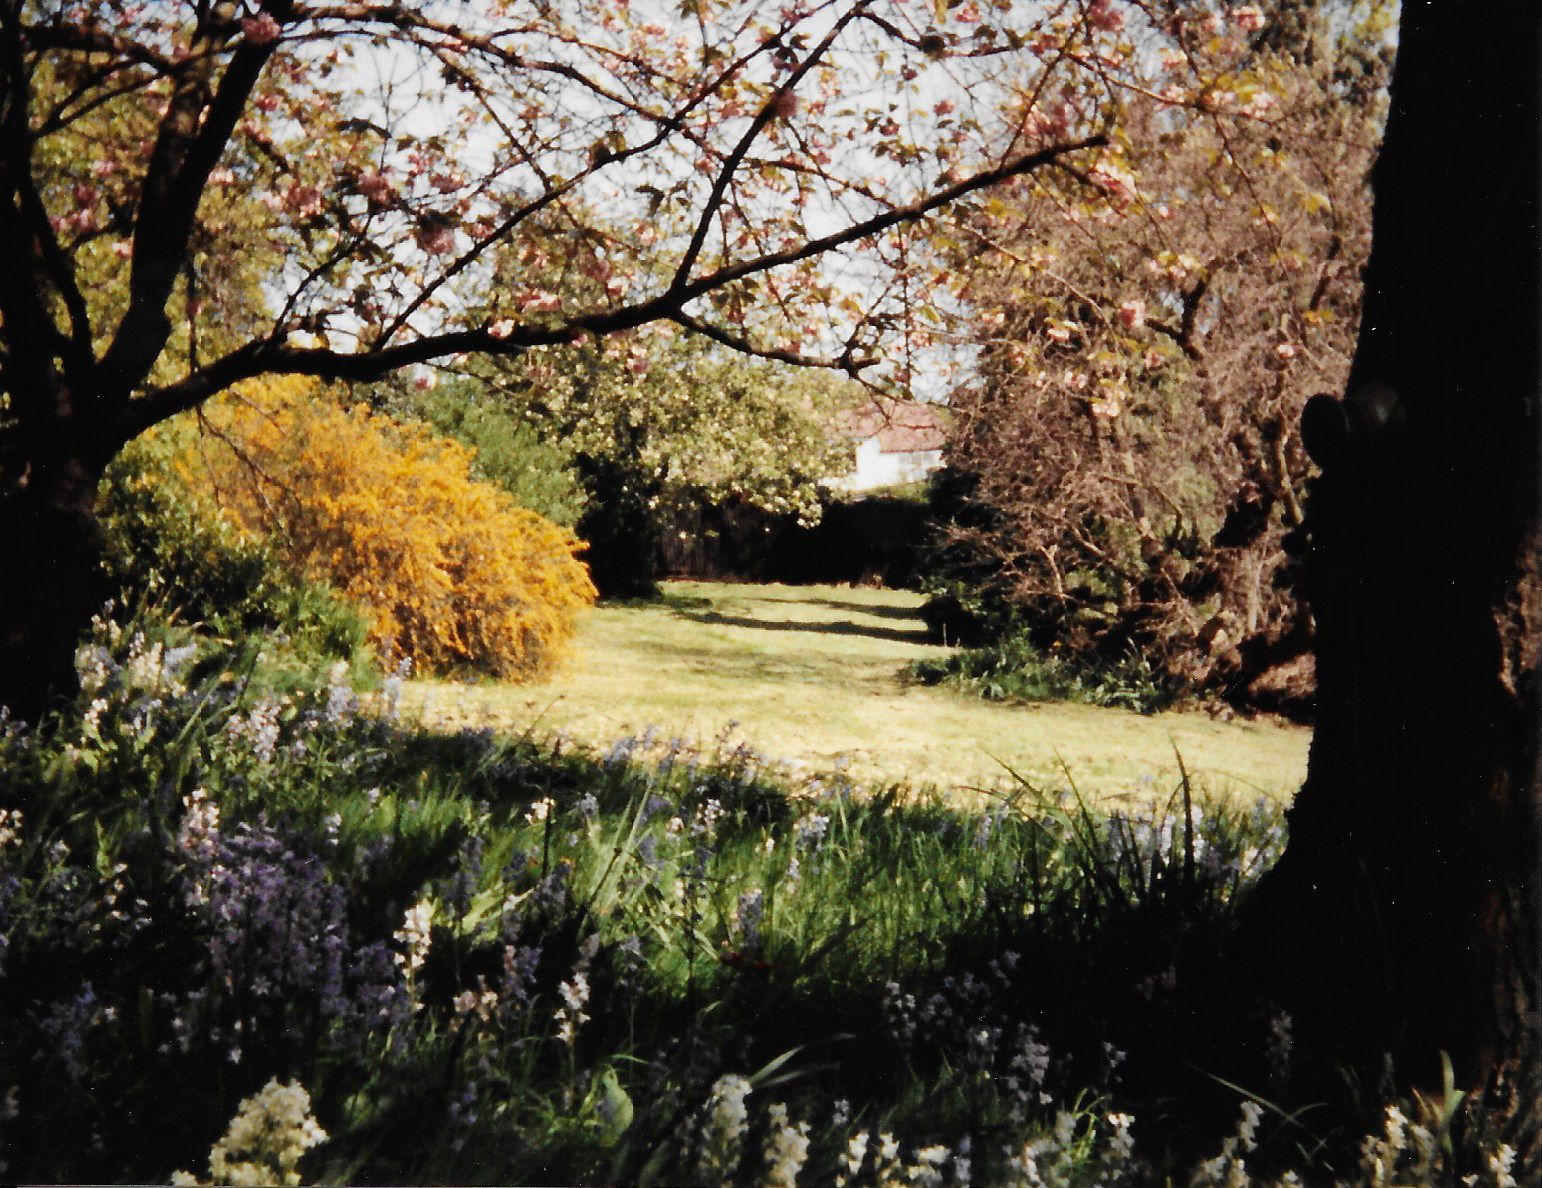 A variety of trees and bushes, a lawn in the middle and flowers in the foreground